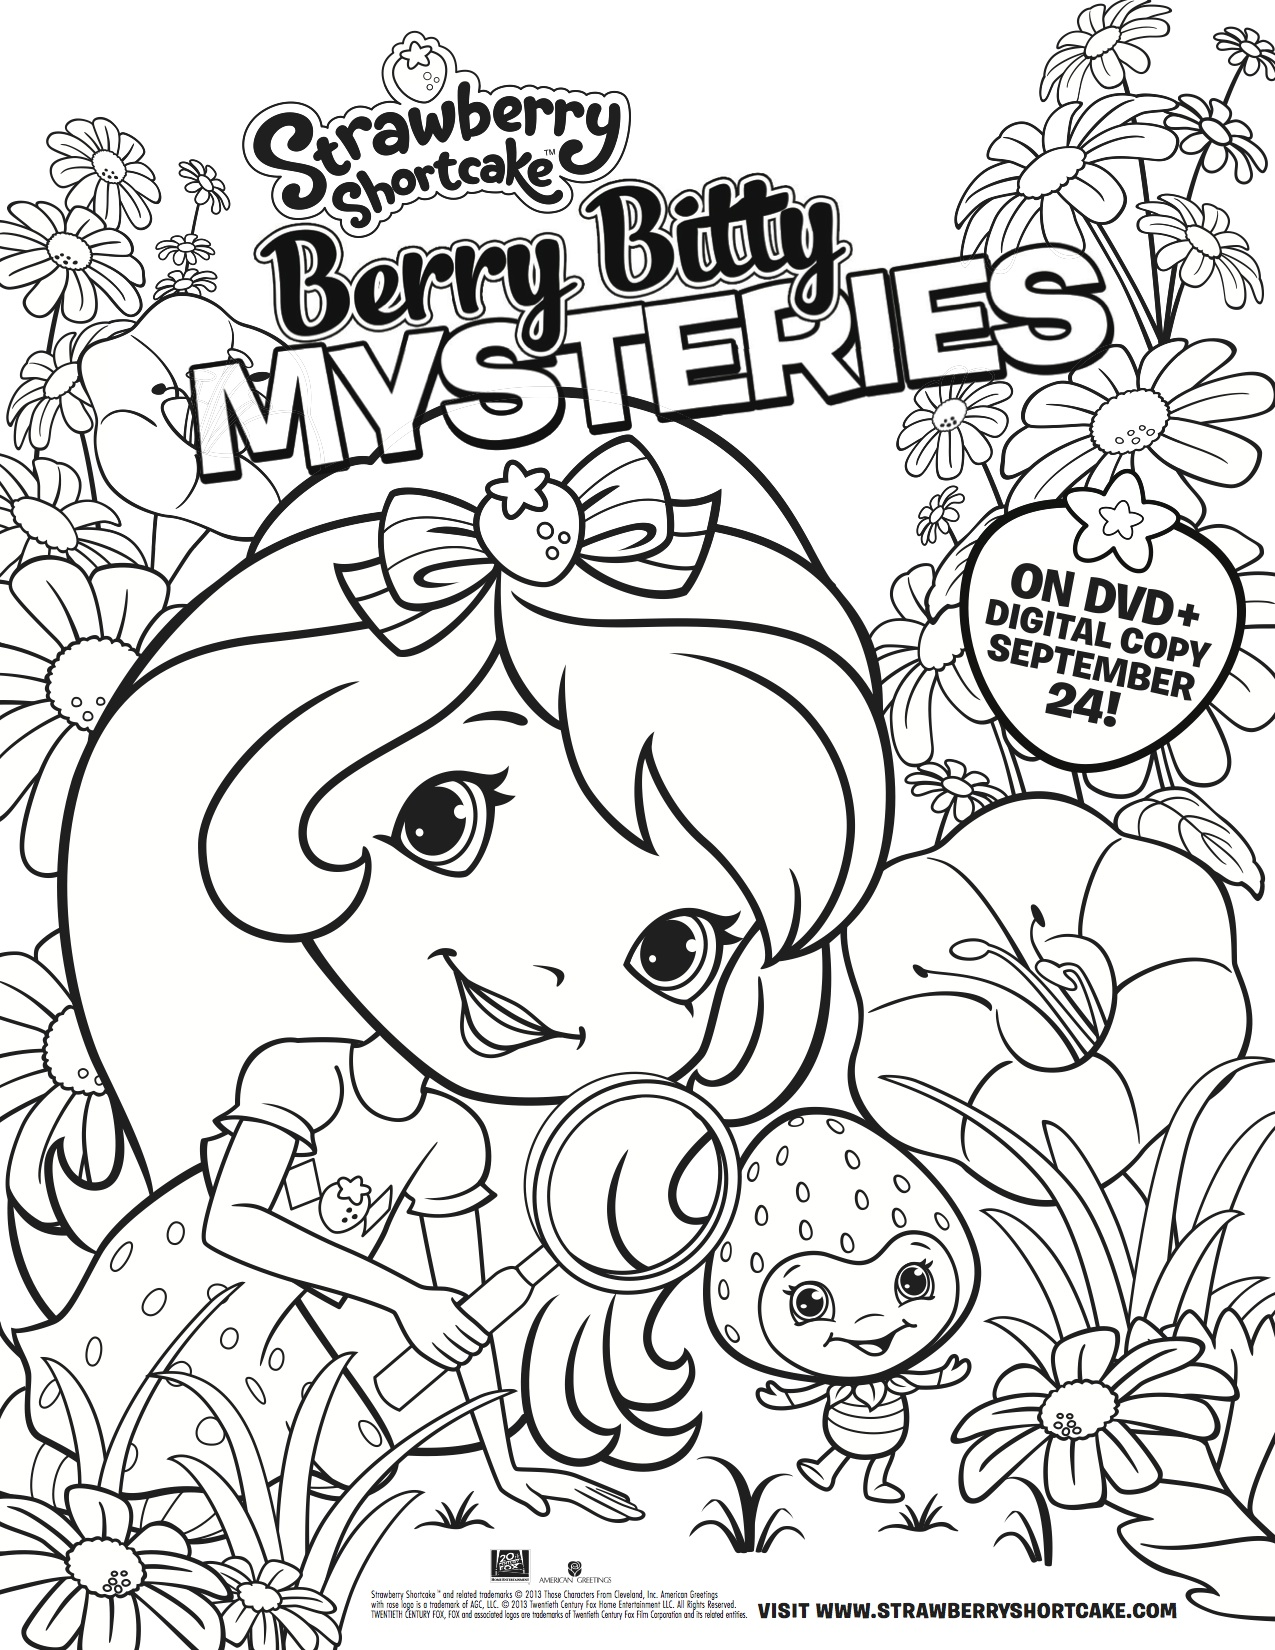 Strawberry Shortcake: Berry Bitty Mysteries Coming to DVD